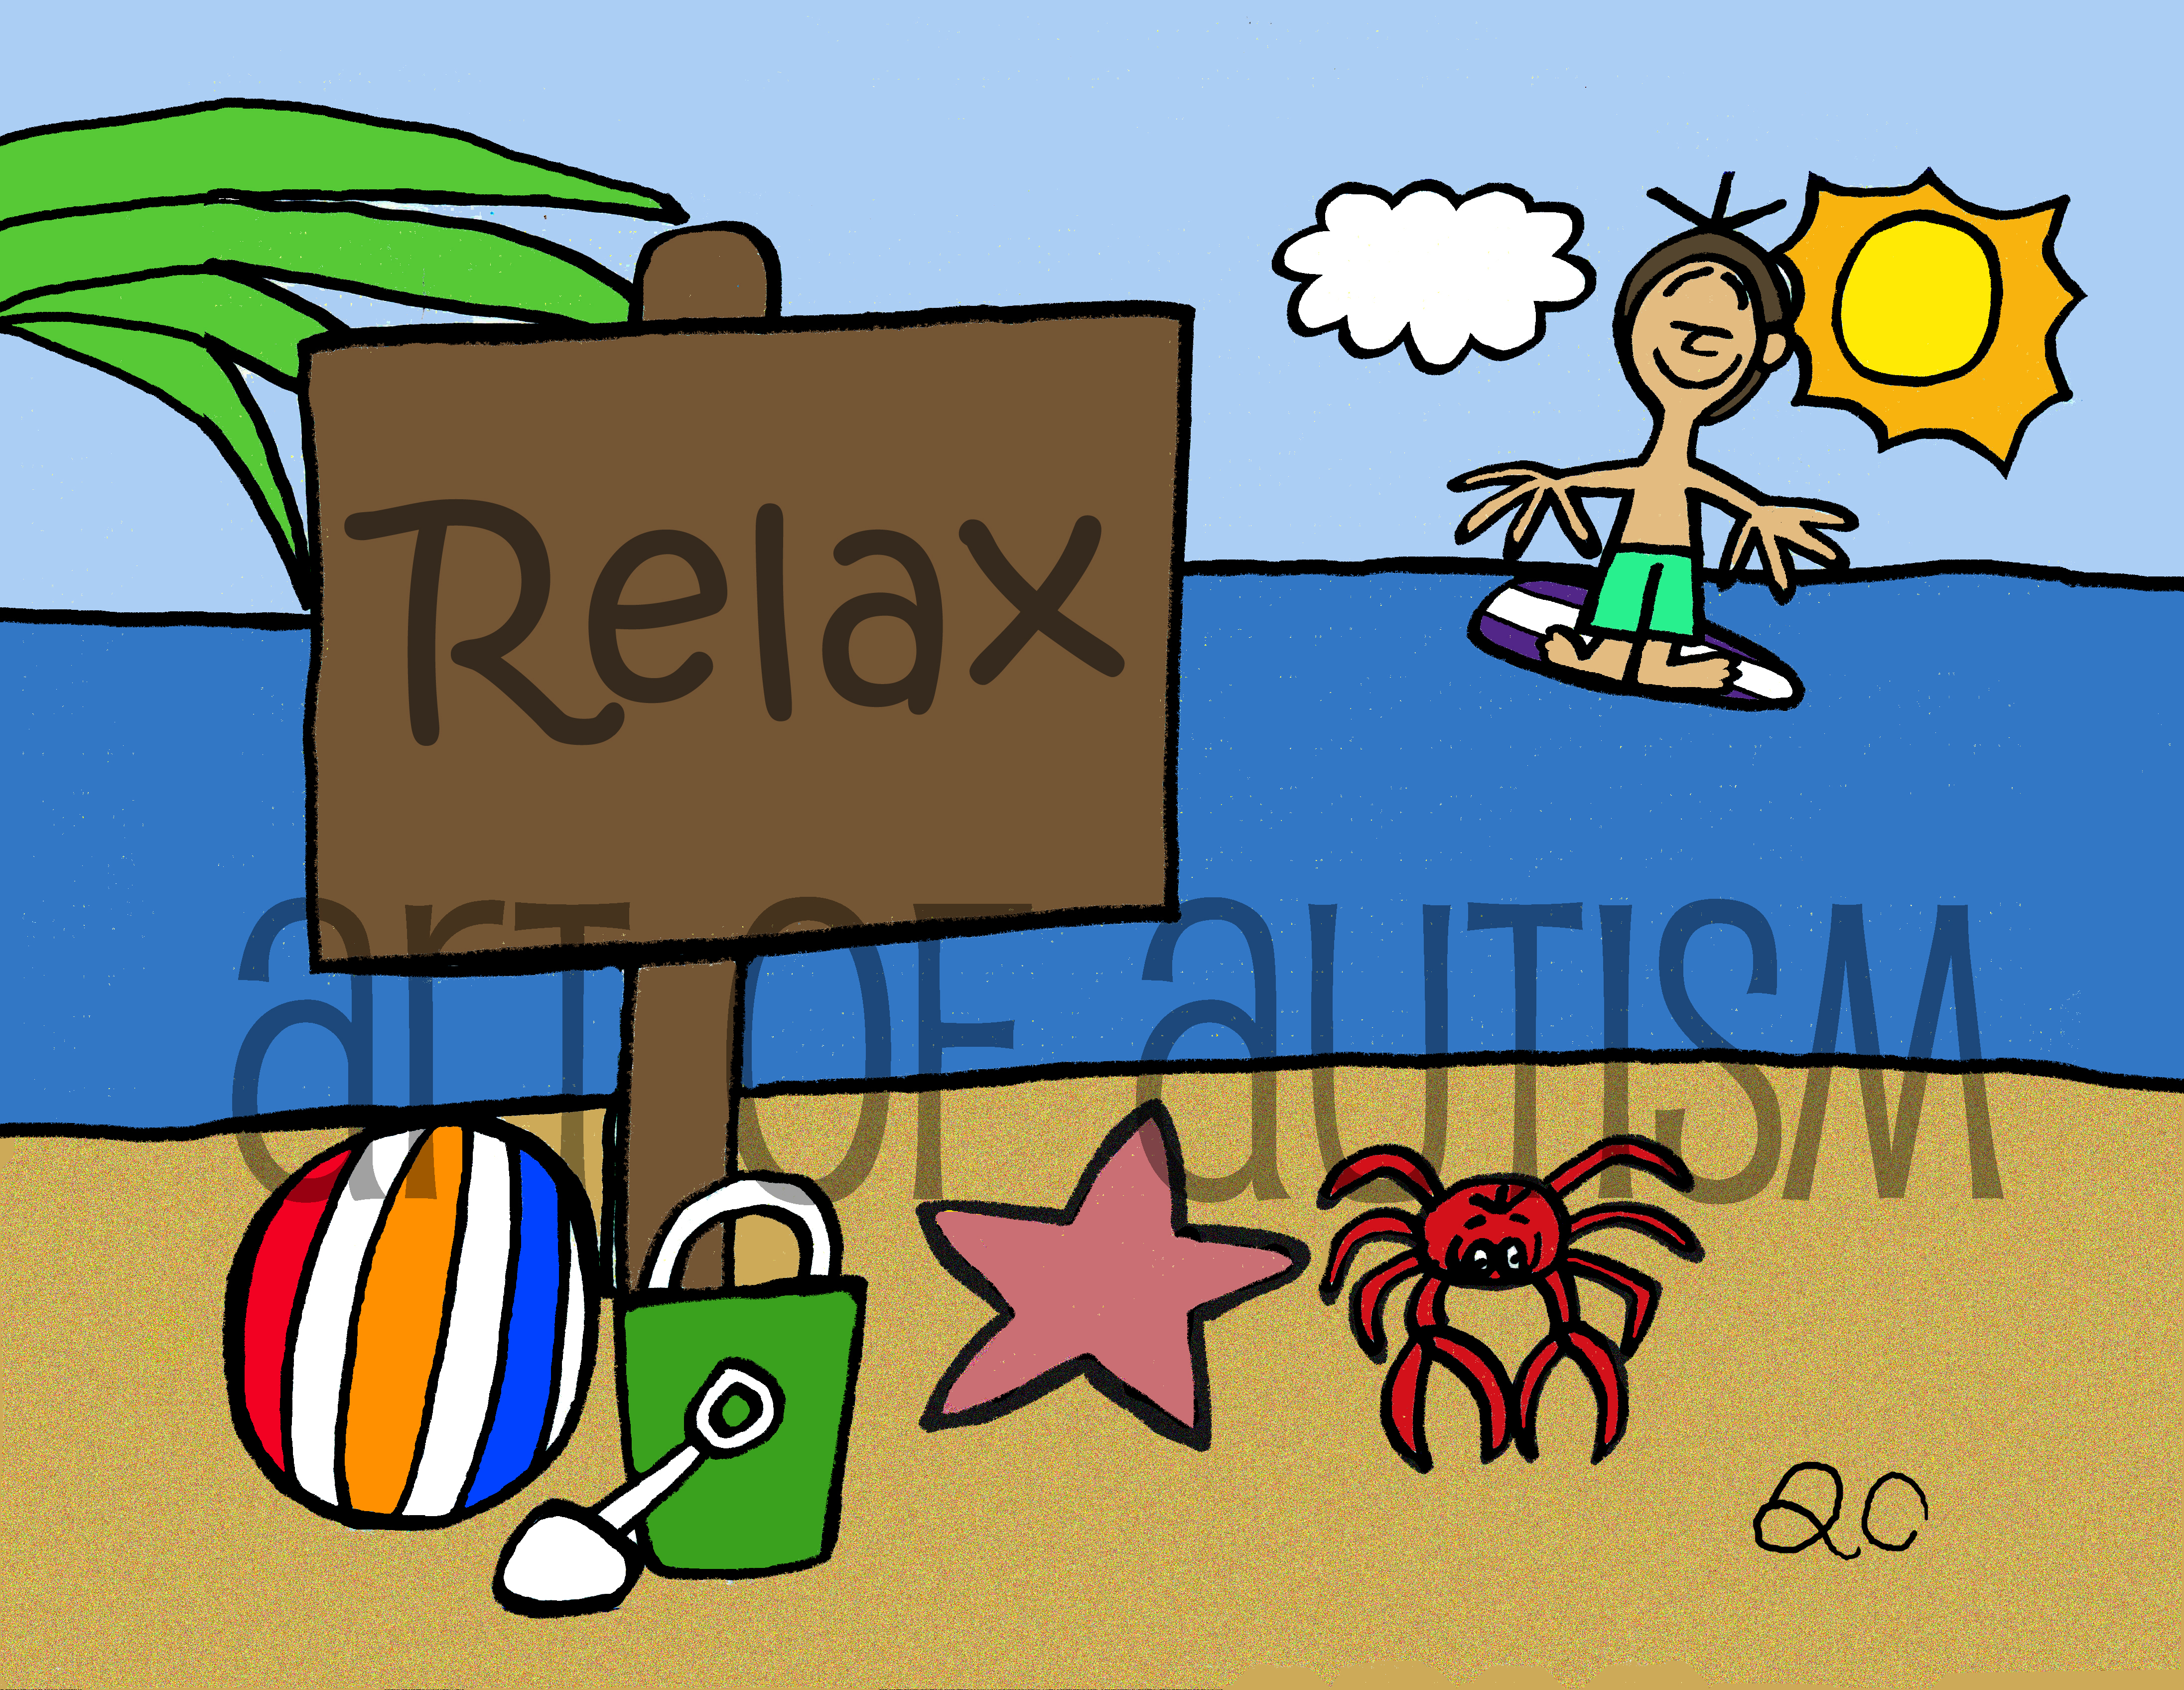 13-009 Relax